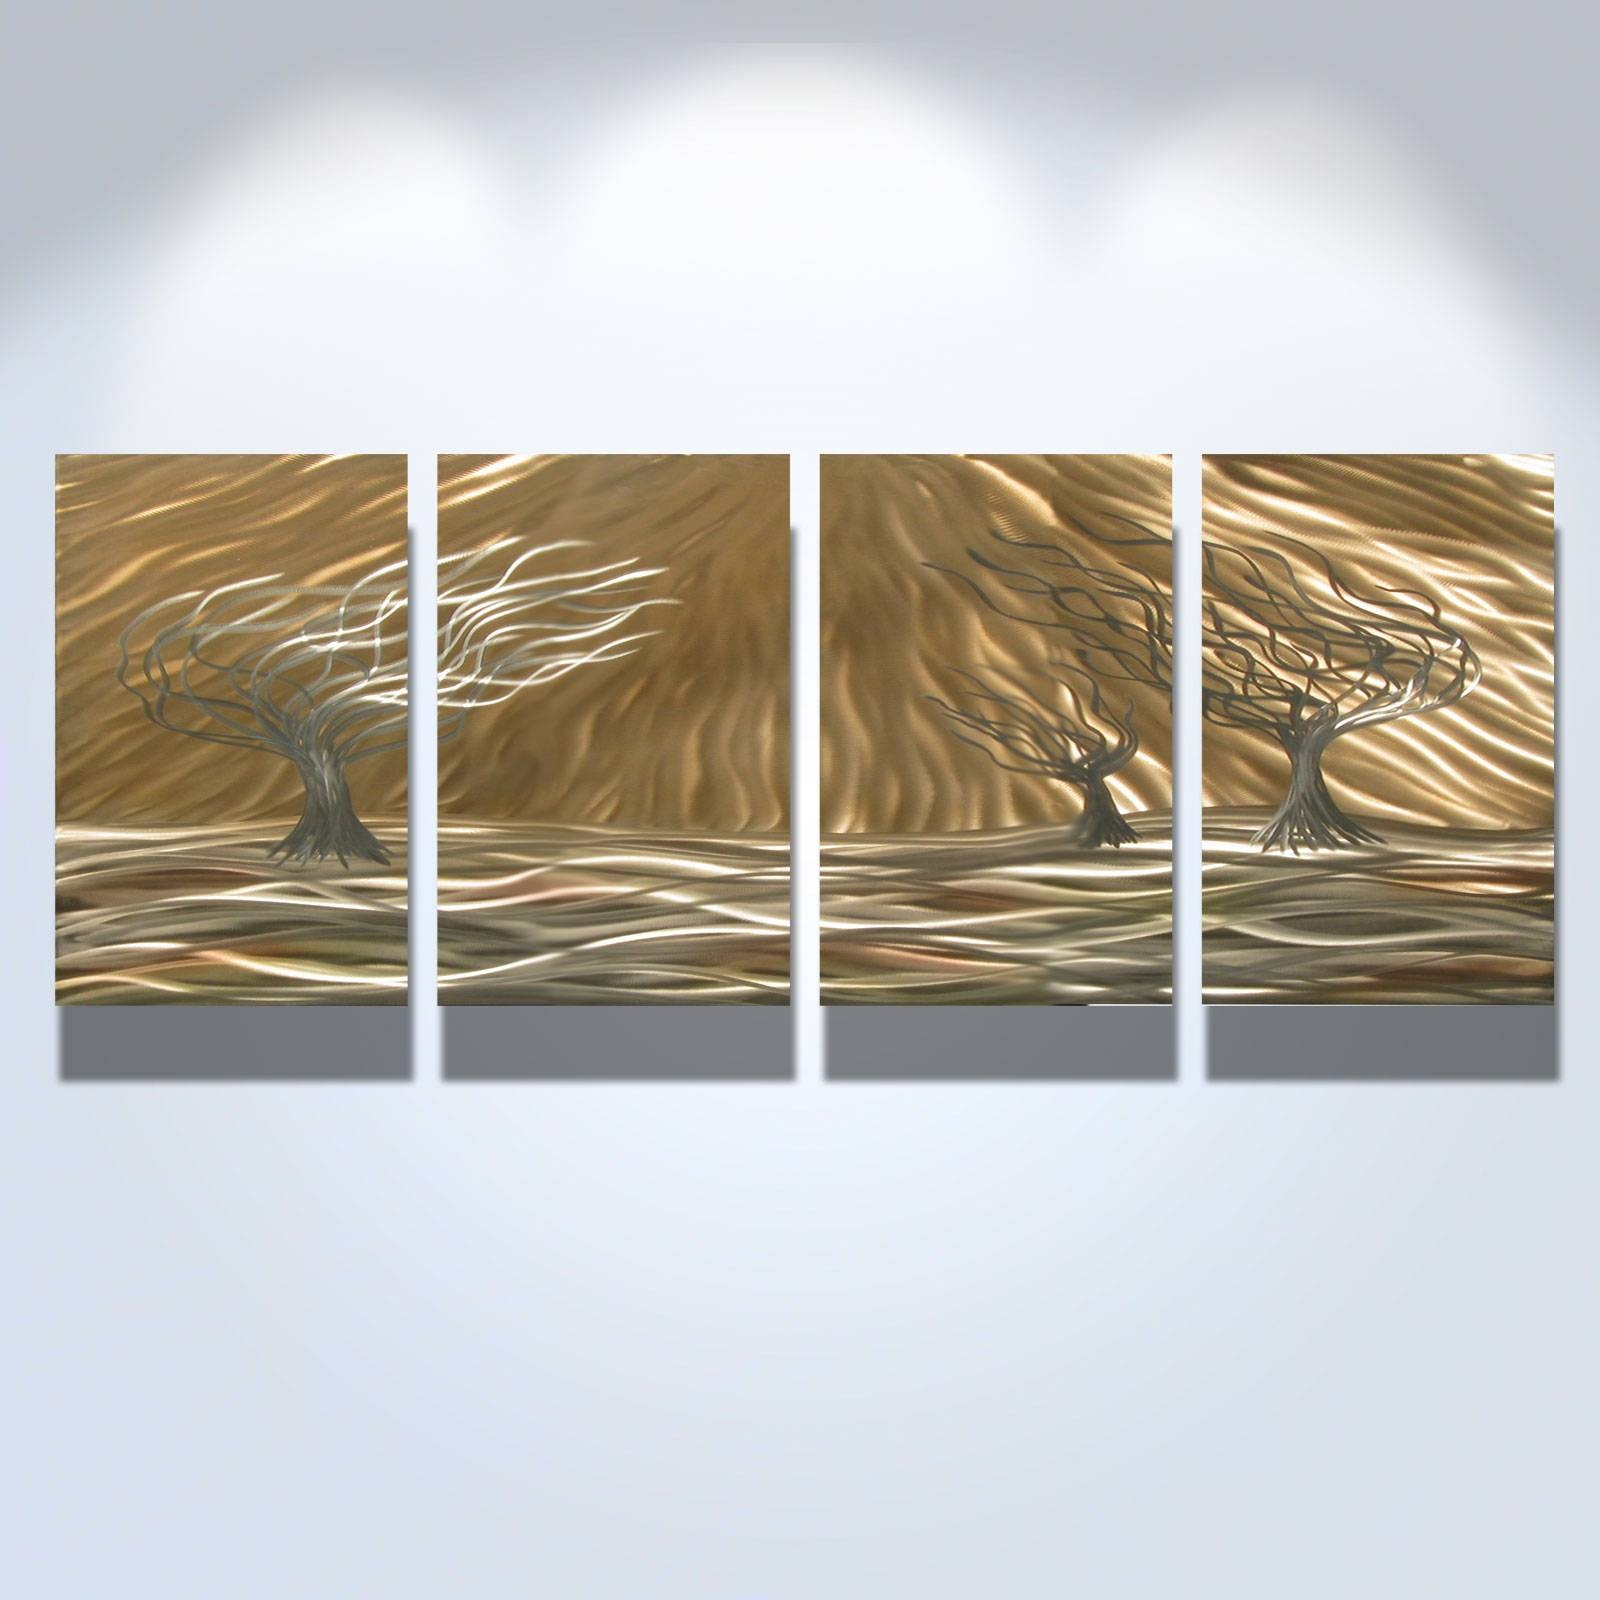 3 Trees 4 Panel – Abstract Metal Wall Art Contemporary Modern Regarding Recent Decorative Metal Wall Art Panels (View 1 of 20)